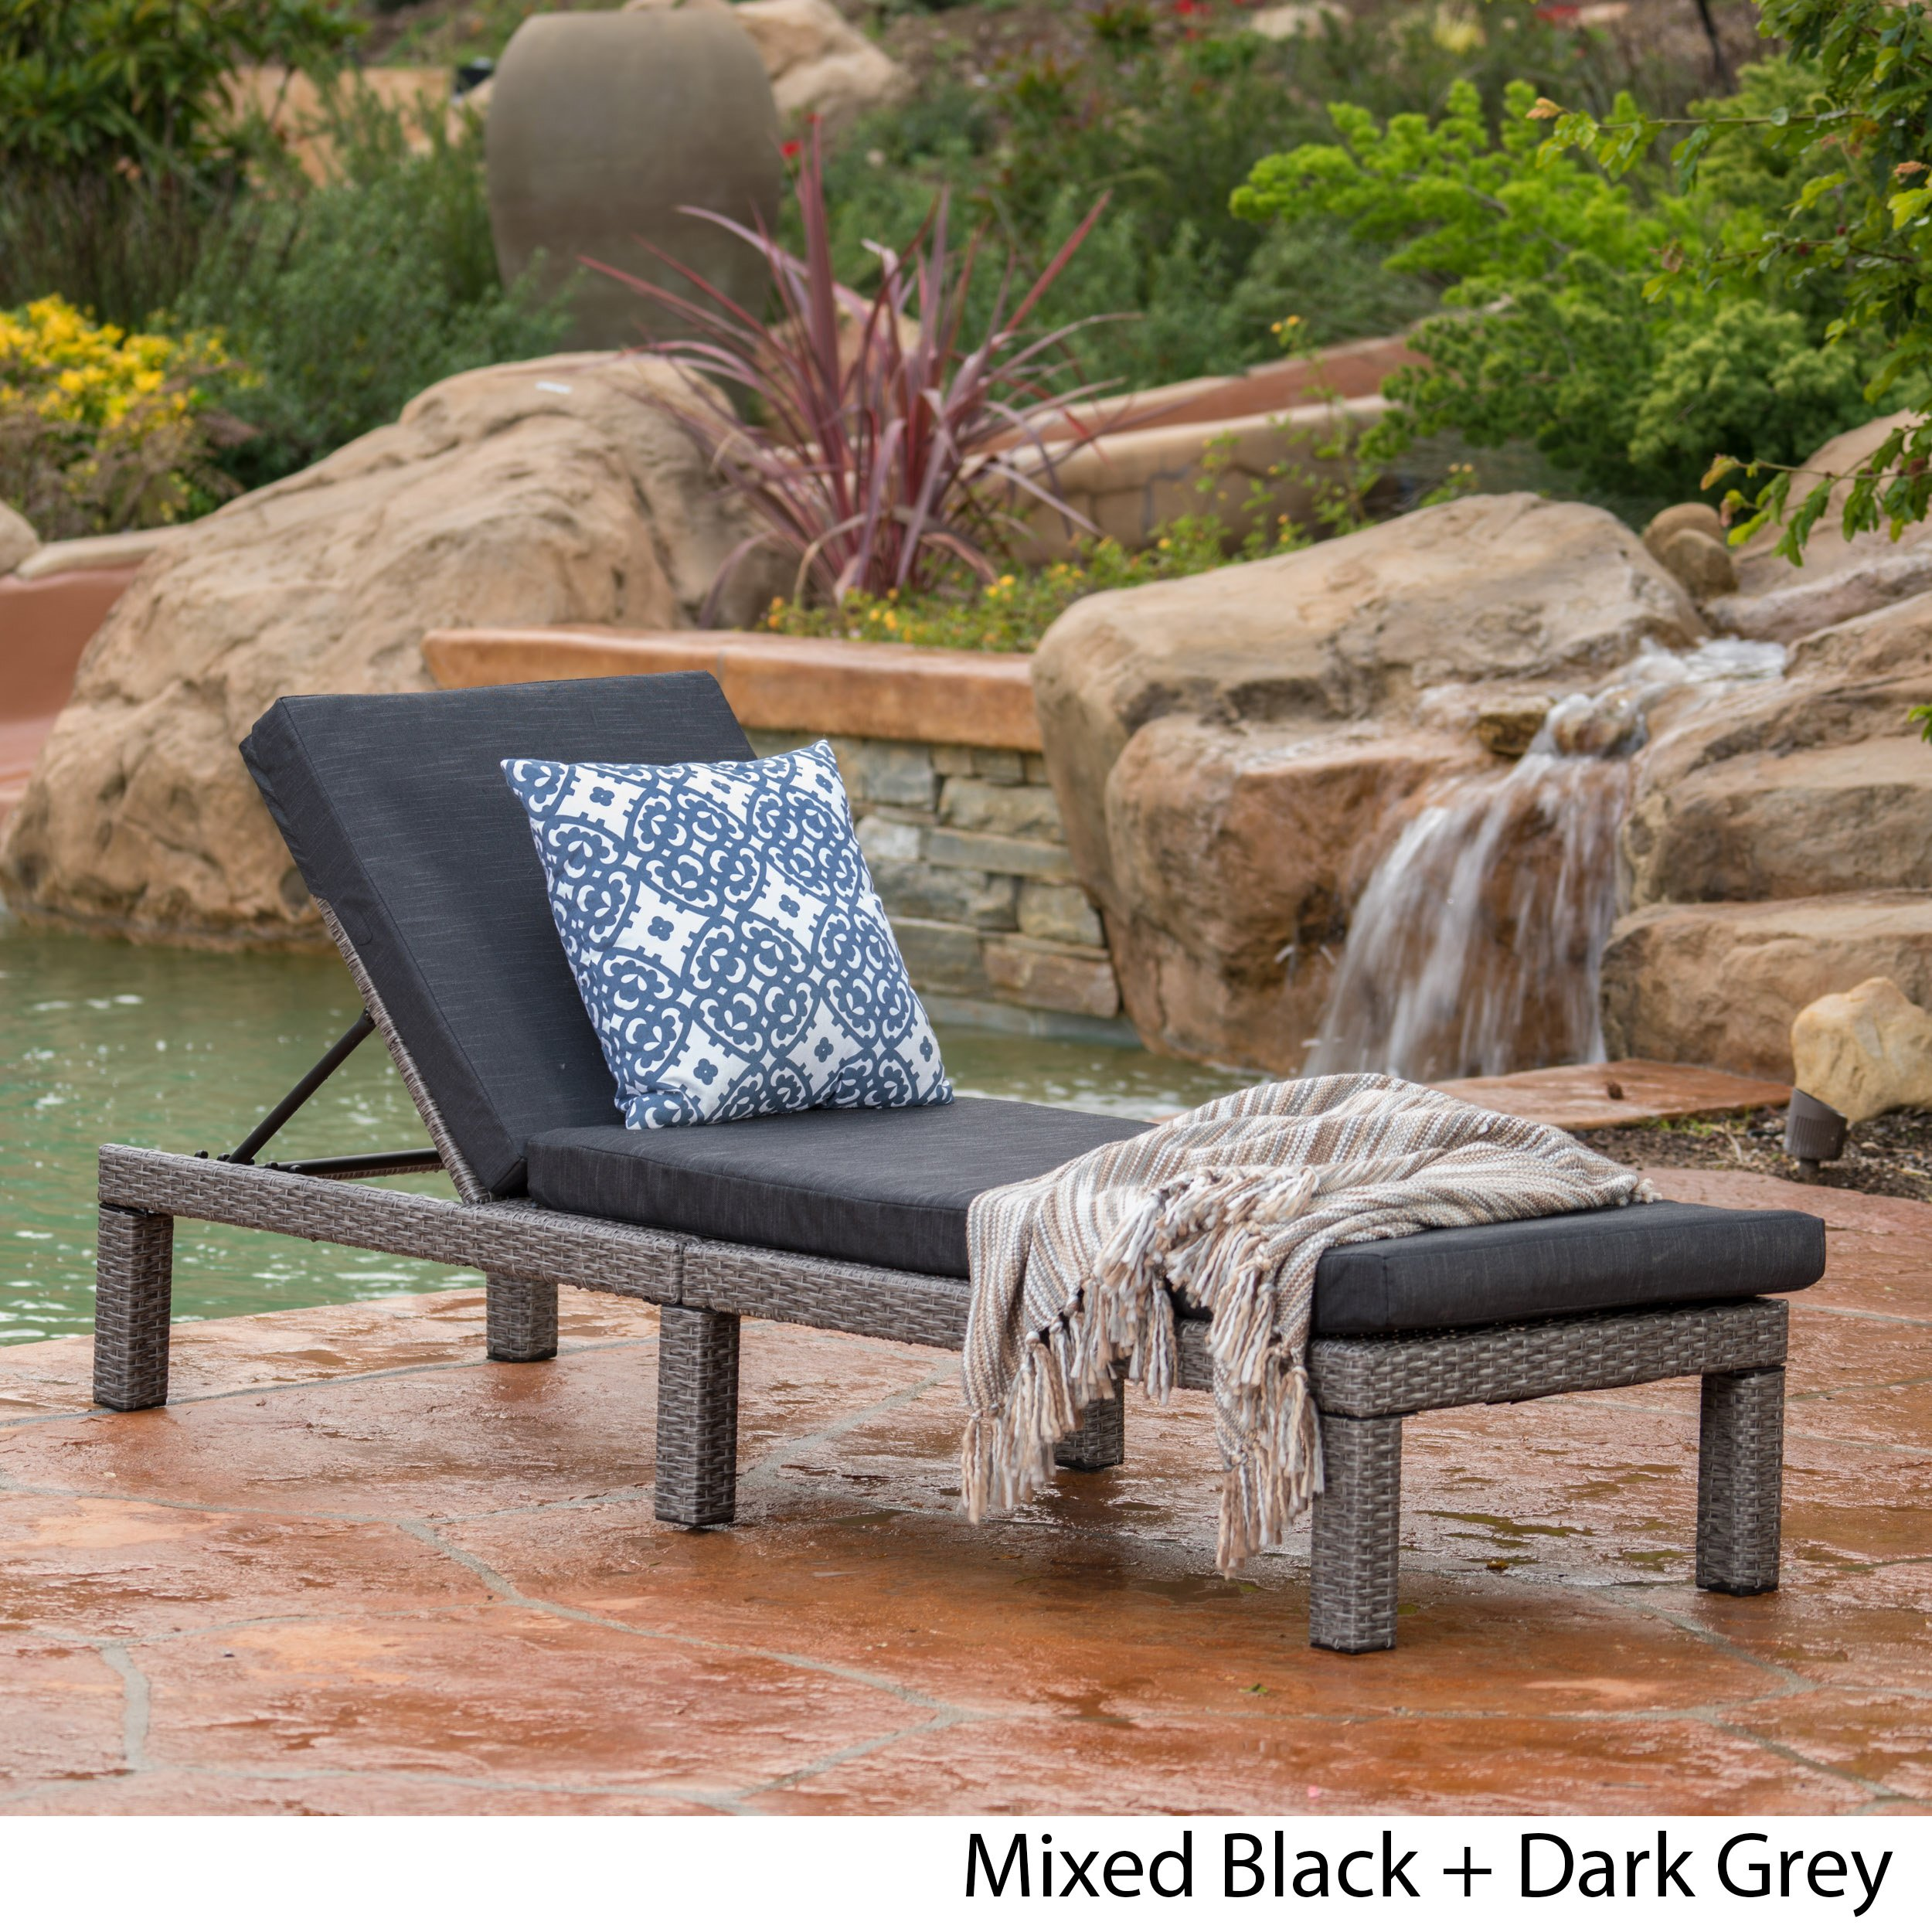 Venice Outdoor Mixed Black Wicker Chaise Lounge with Dark Grey Water Resistant Cushion by Great Deal Furniture